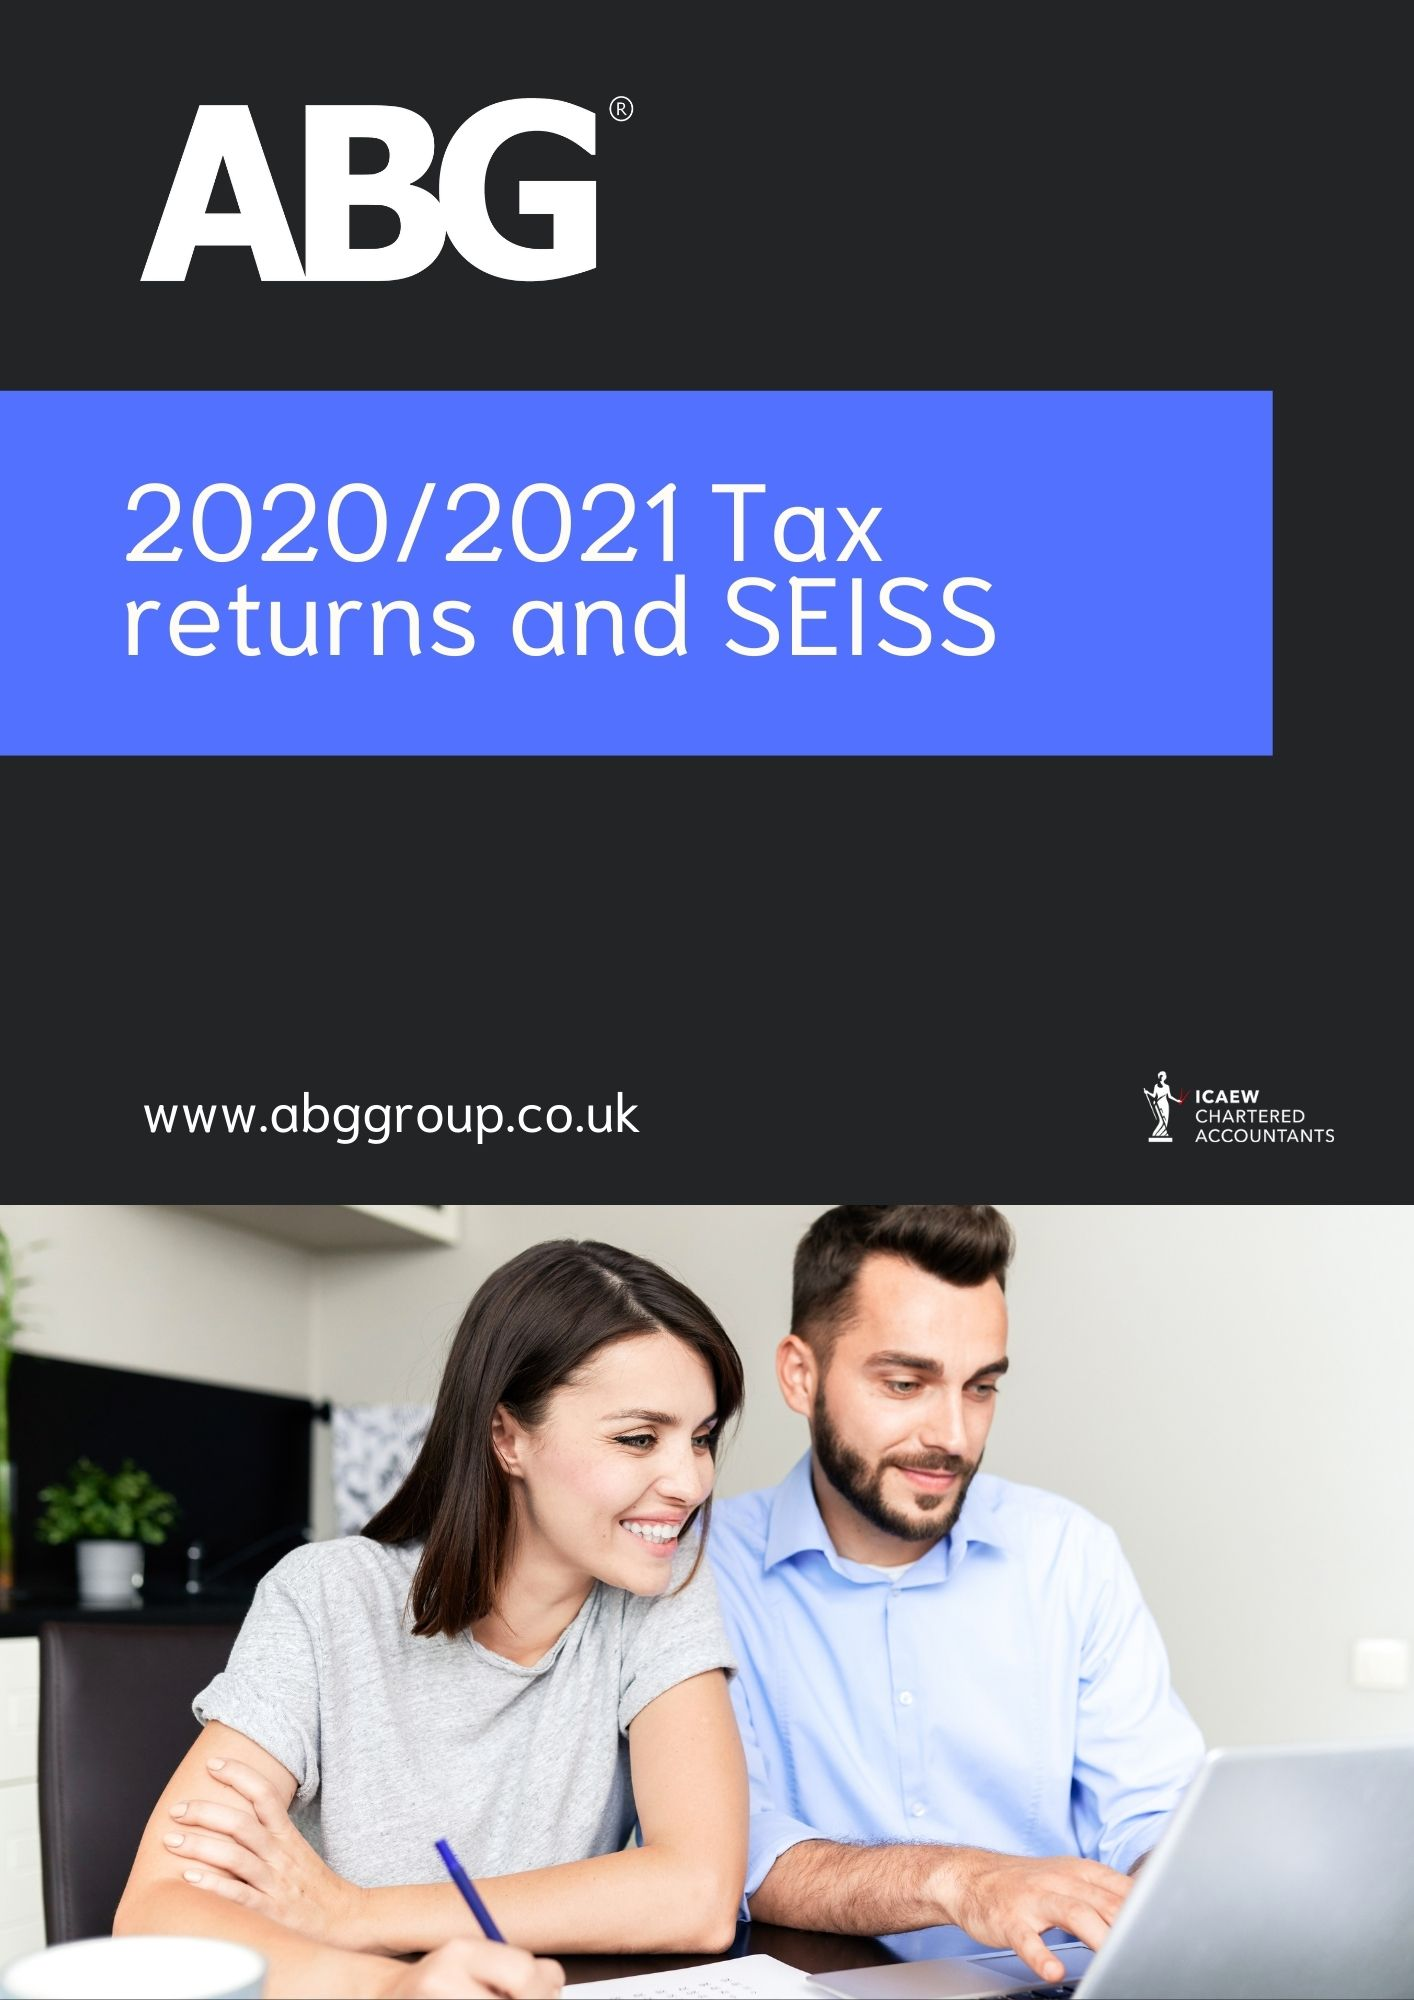 202021 tax returns and SEISS grants